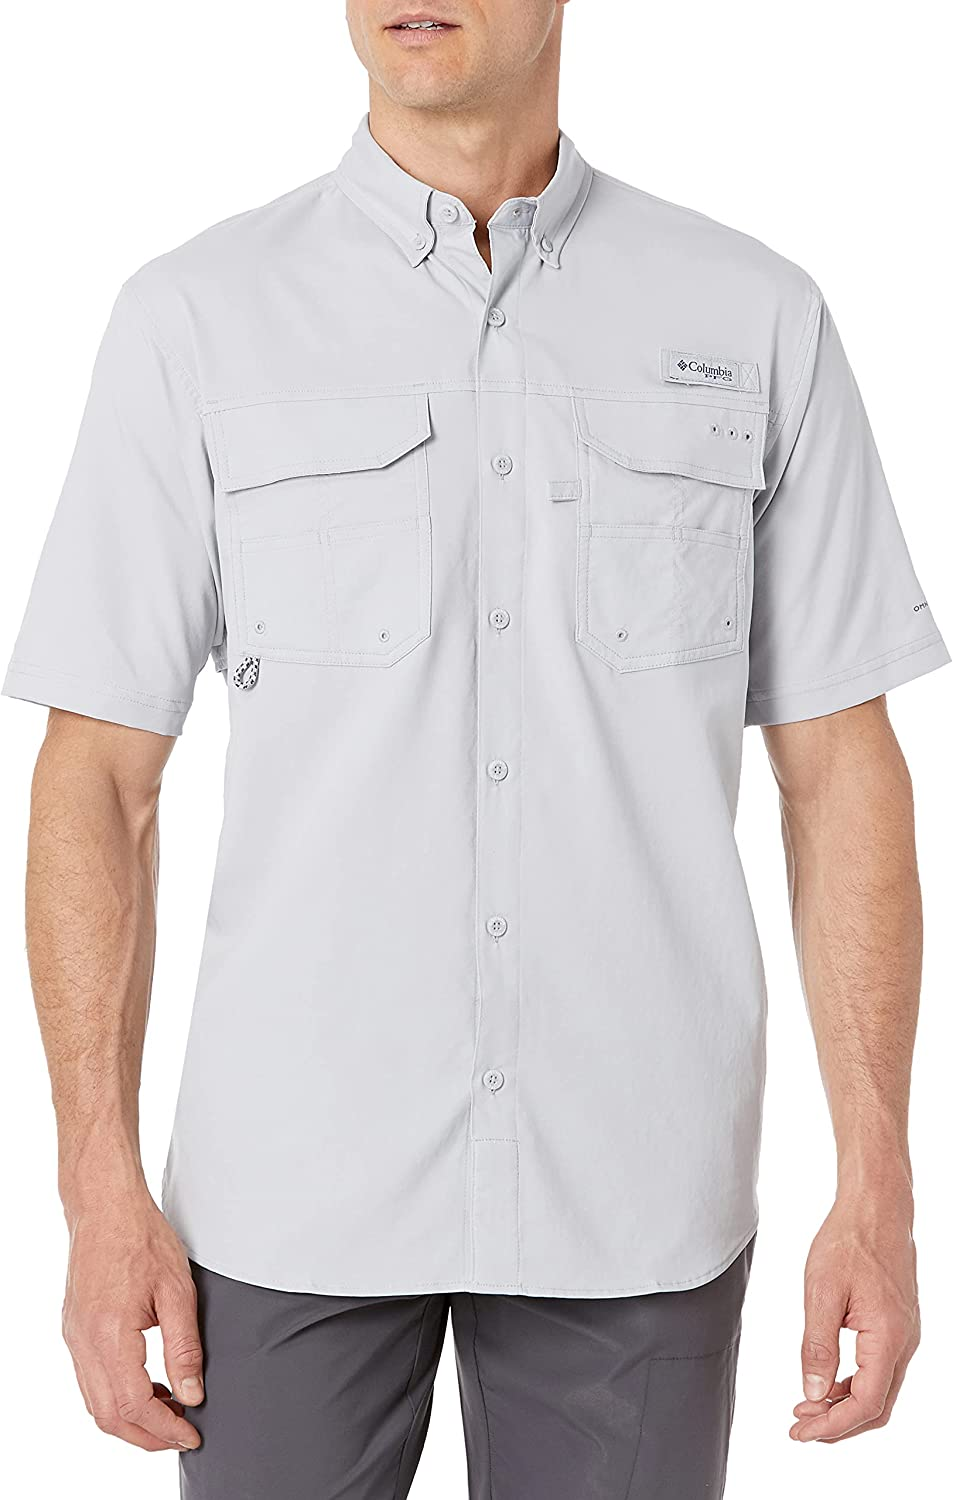 Columbia Men's Blood and Guts Cash SALENEW very popular! special price III Short Shirt Sleeve Woven